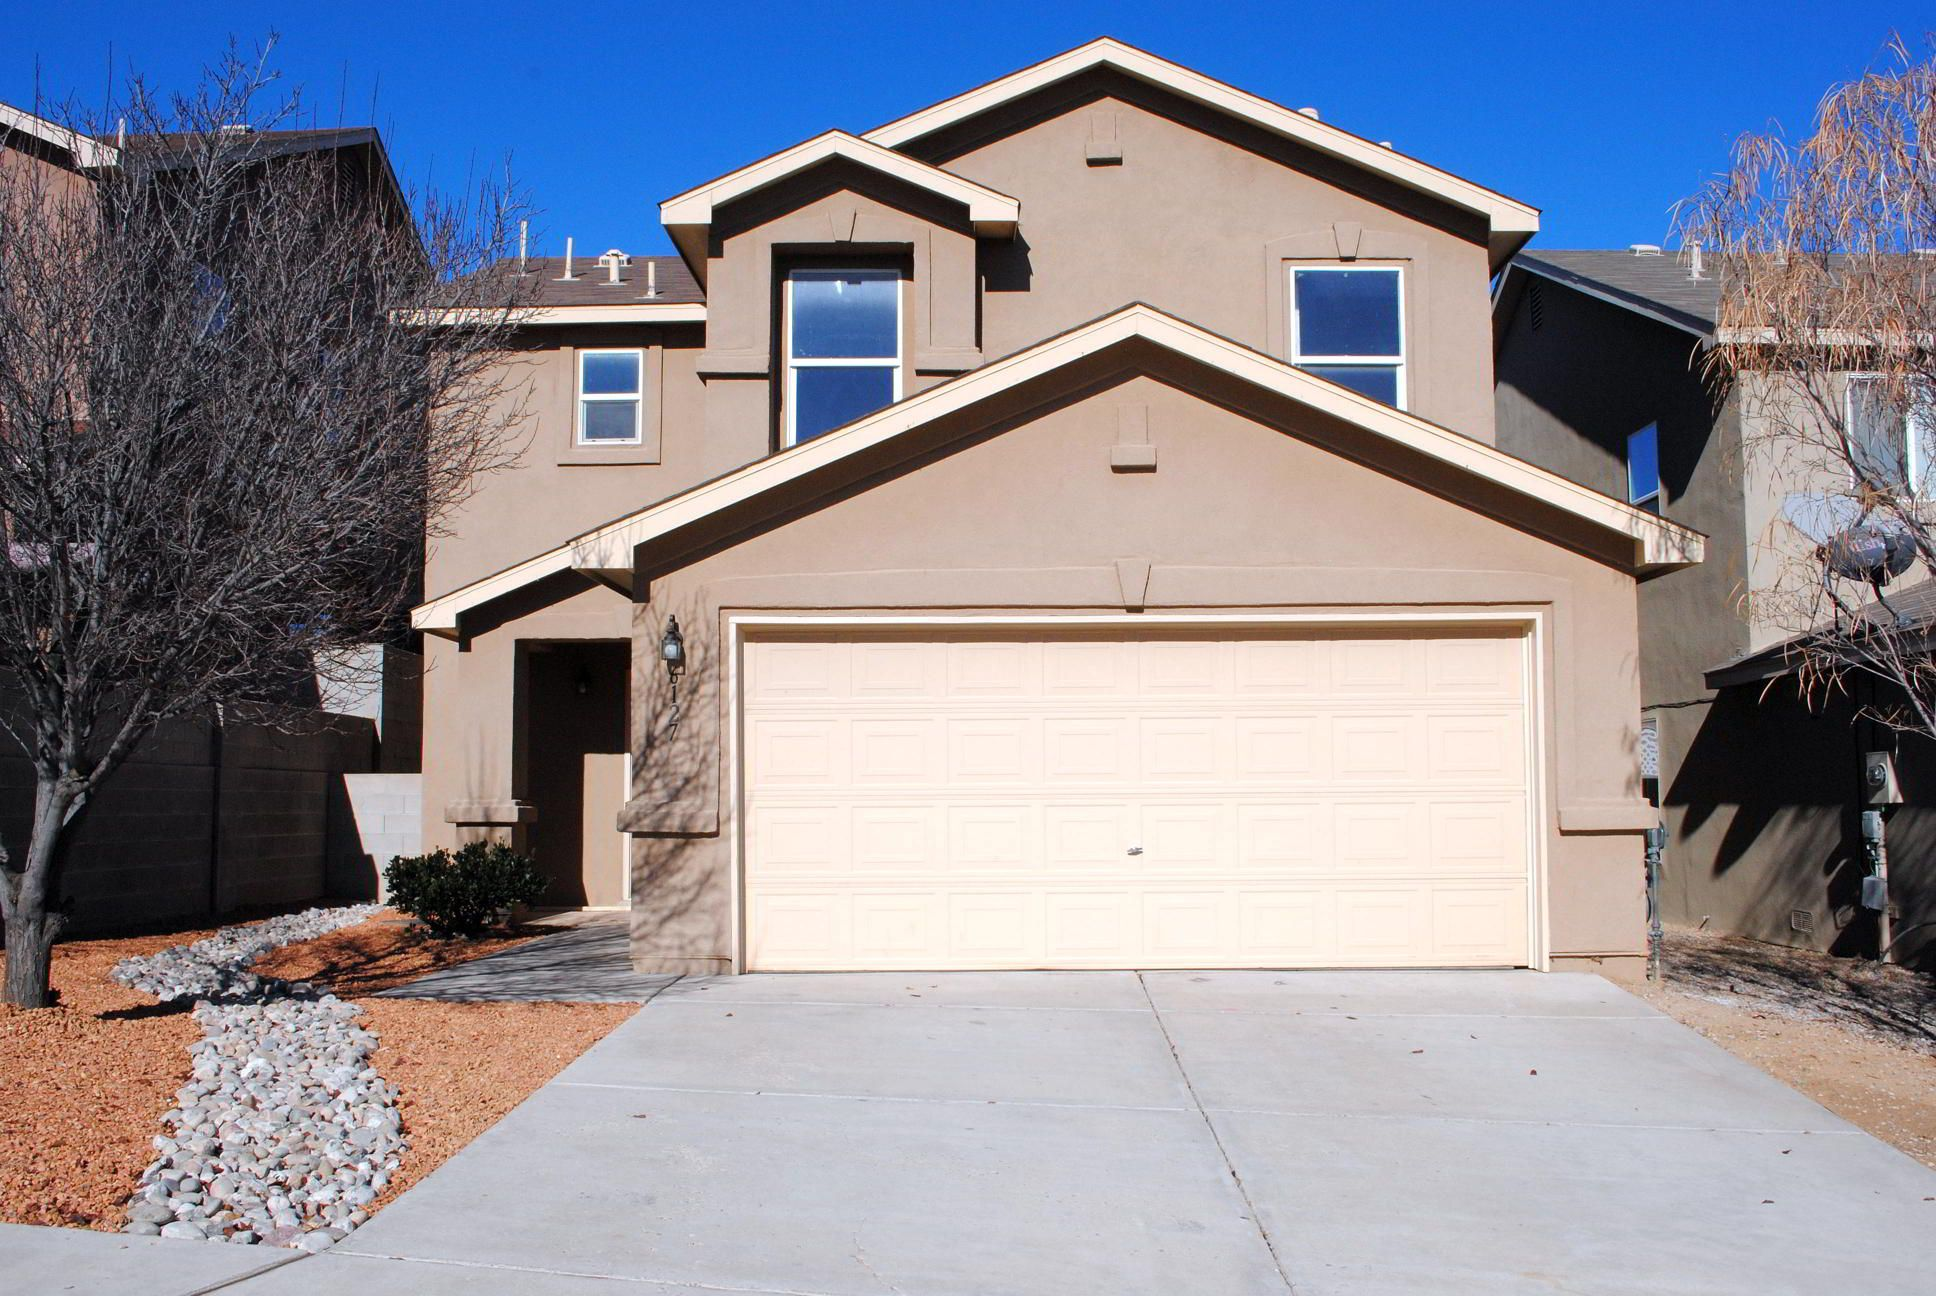 6127 Park Hill Ave NW Albuquerque, NM 87114   Beautiful remodeled home for sale - call me for showing